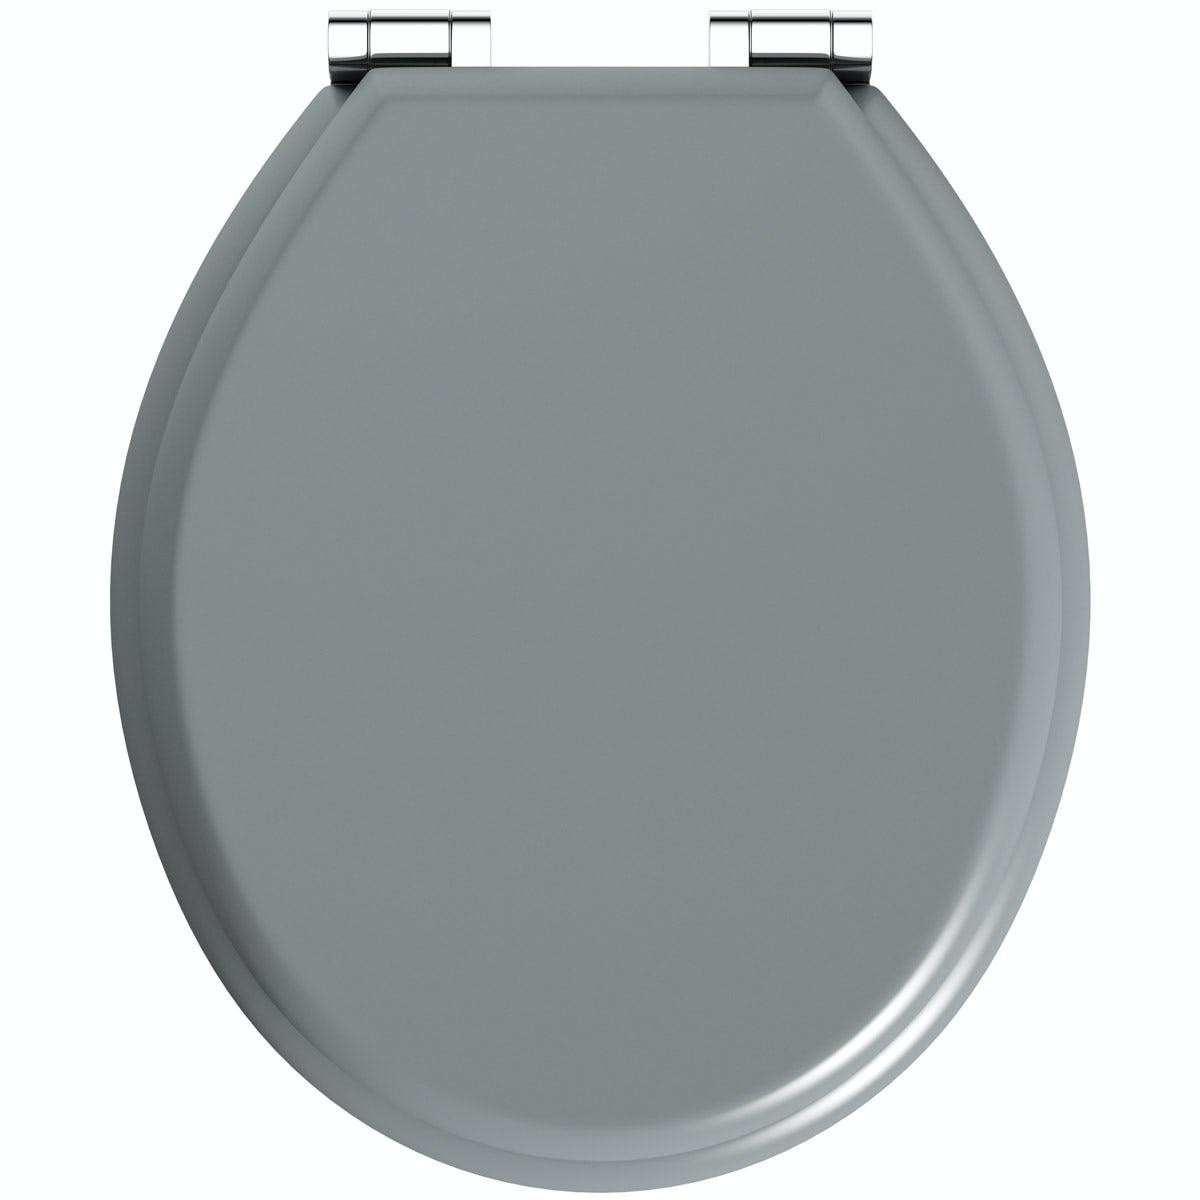 The Bath Co Satin Grey Soft Close Wooden Toilet Seat